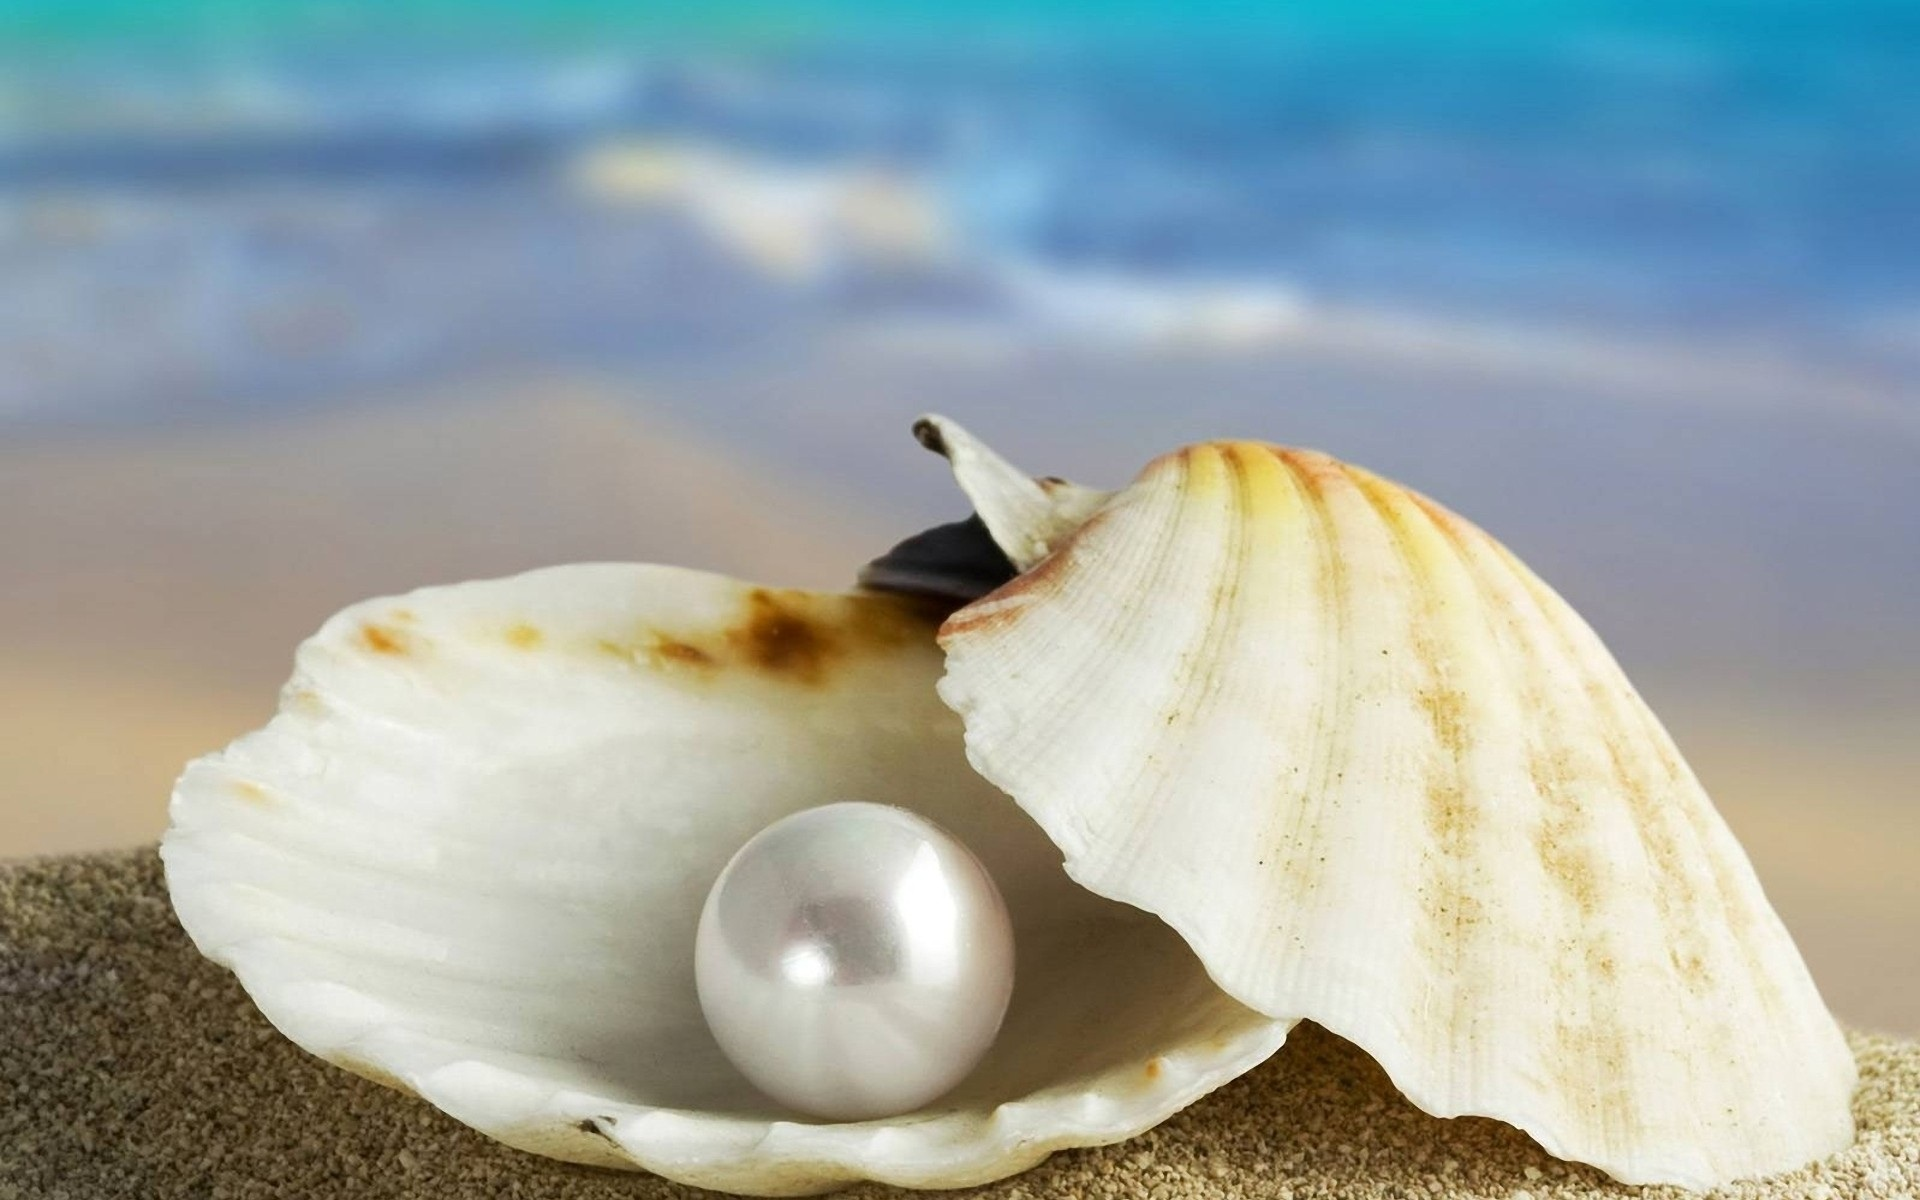 The symbolic meaning of sea shells whispers channels the symbolic meaning of sea shells whispers channels prophecies visions biocorpaavc Choice Image